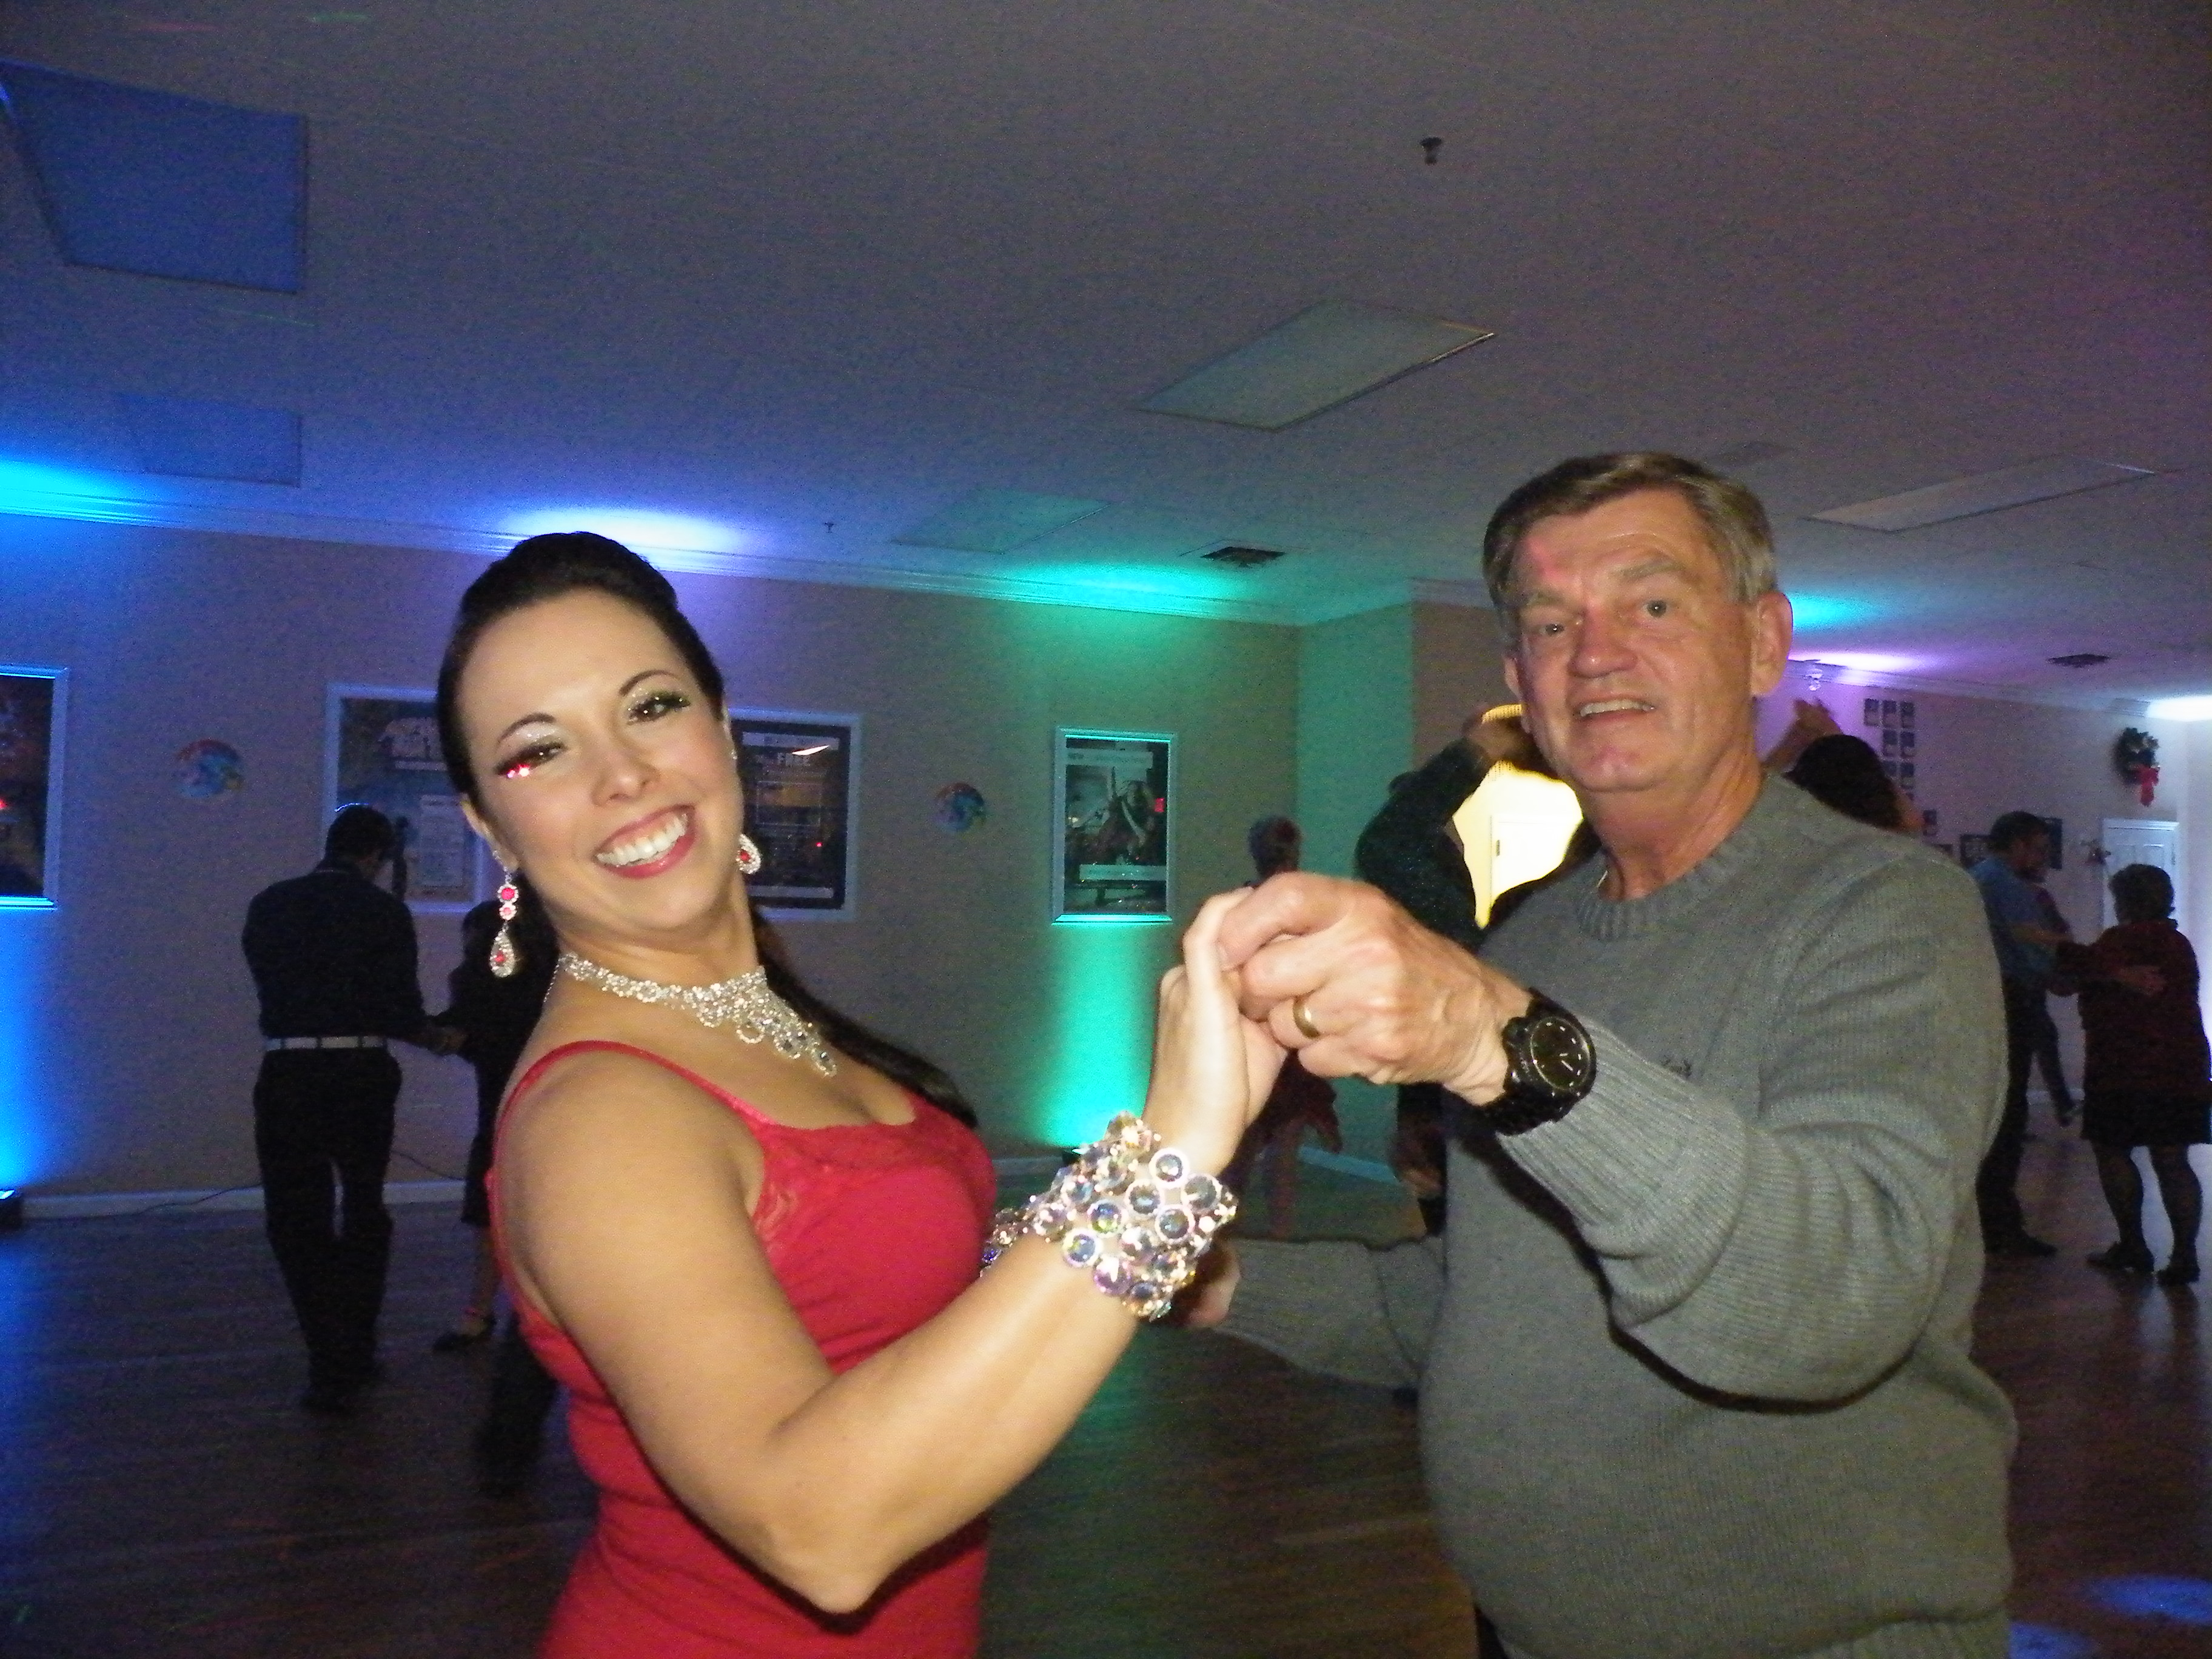 The Owner dancing with a student